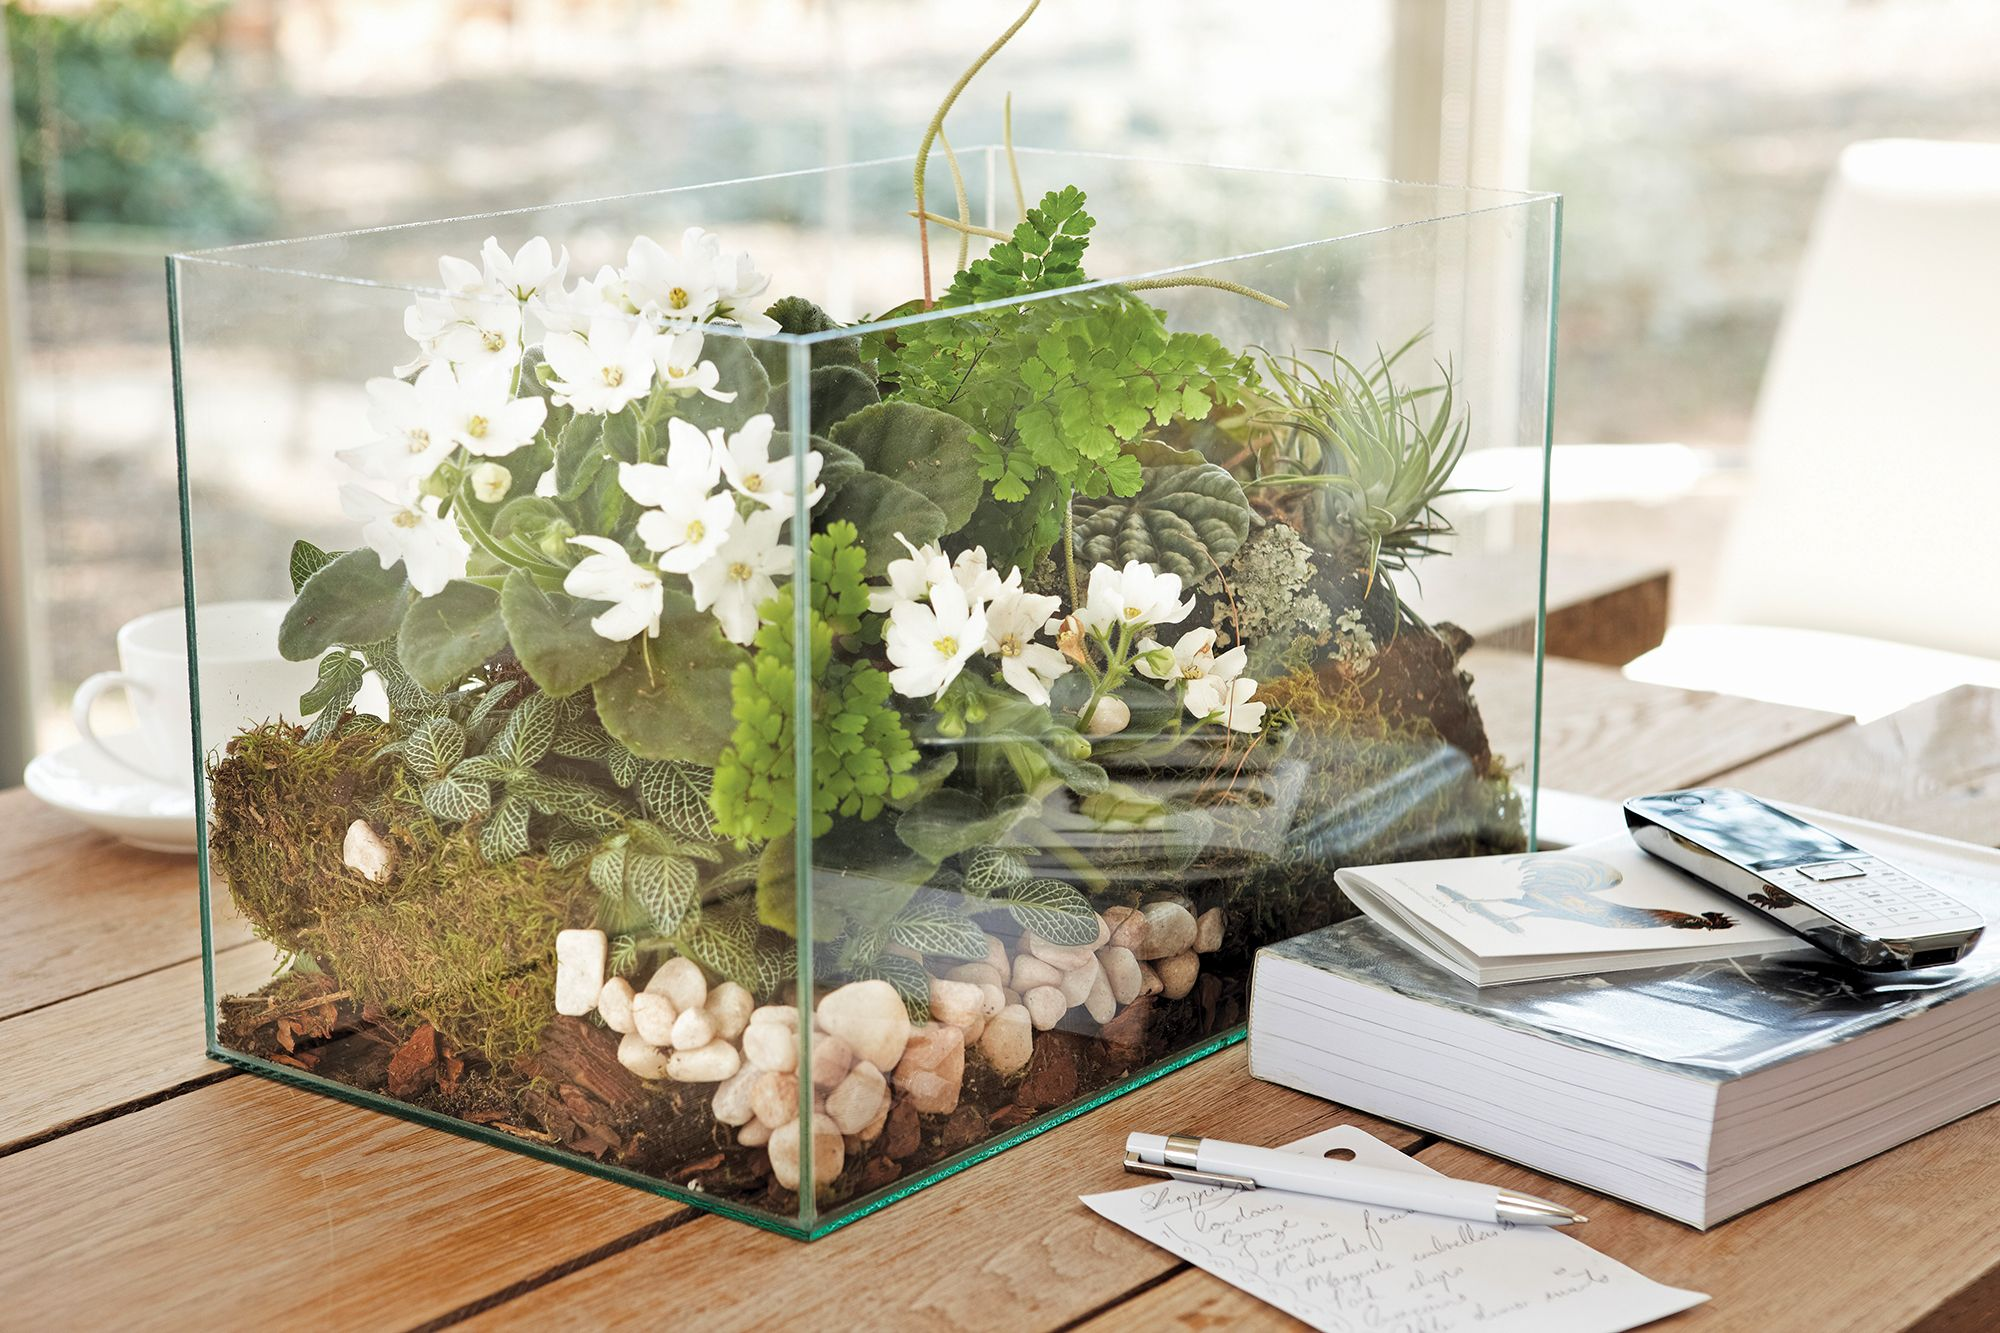 Here's How To Create Your Own Miniature Biotope For Your High-Rise Apartment